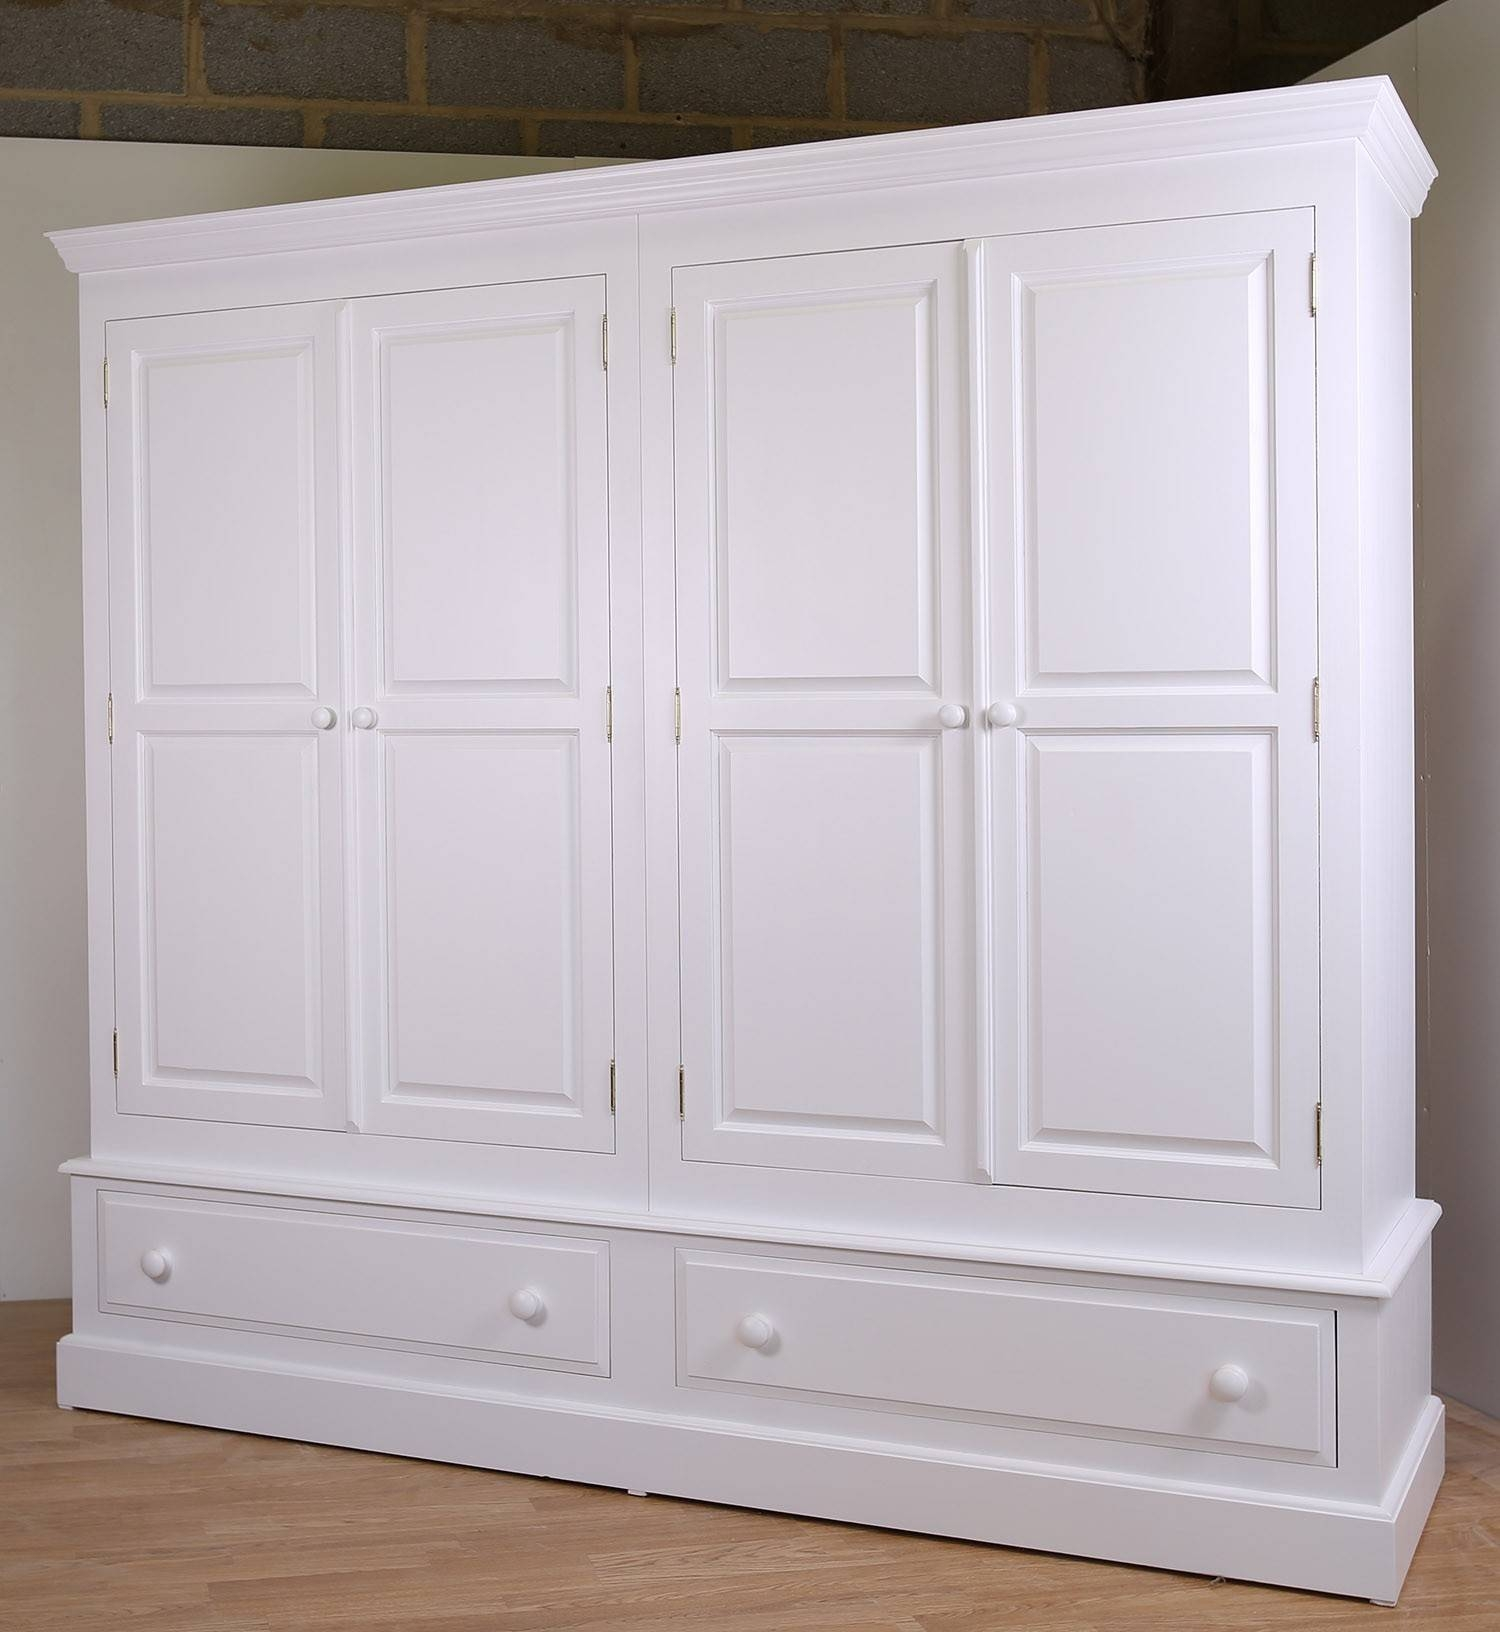 Farrow & Ball Painted 4 Door Wardrobe With Drawers In 3 Sizes with Farrow and Ball Painted Wardrobes (Image 5 of 15)